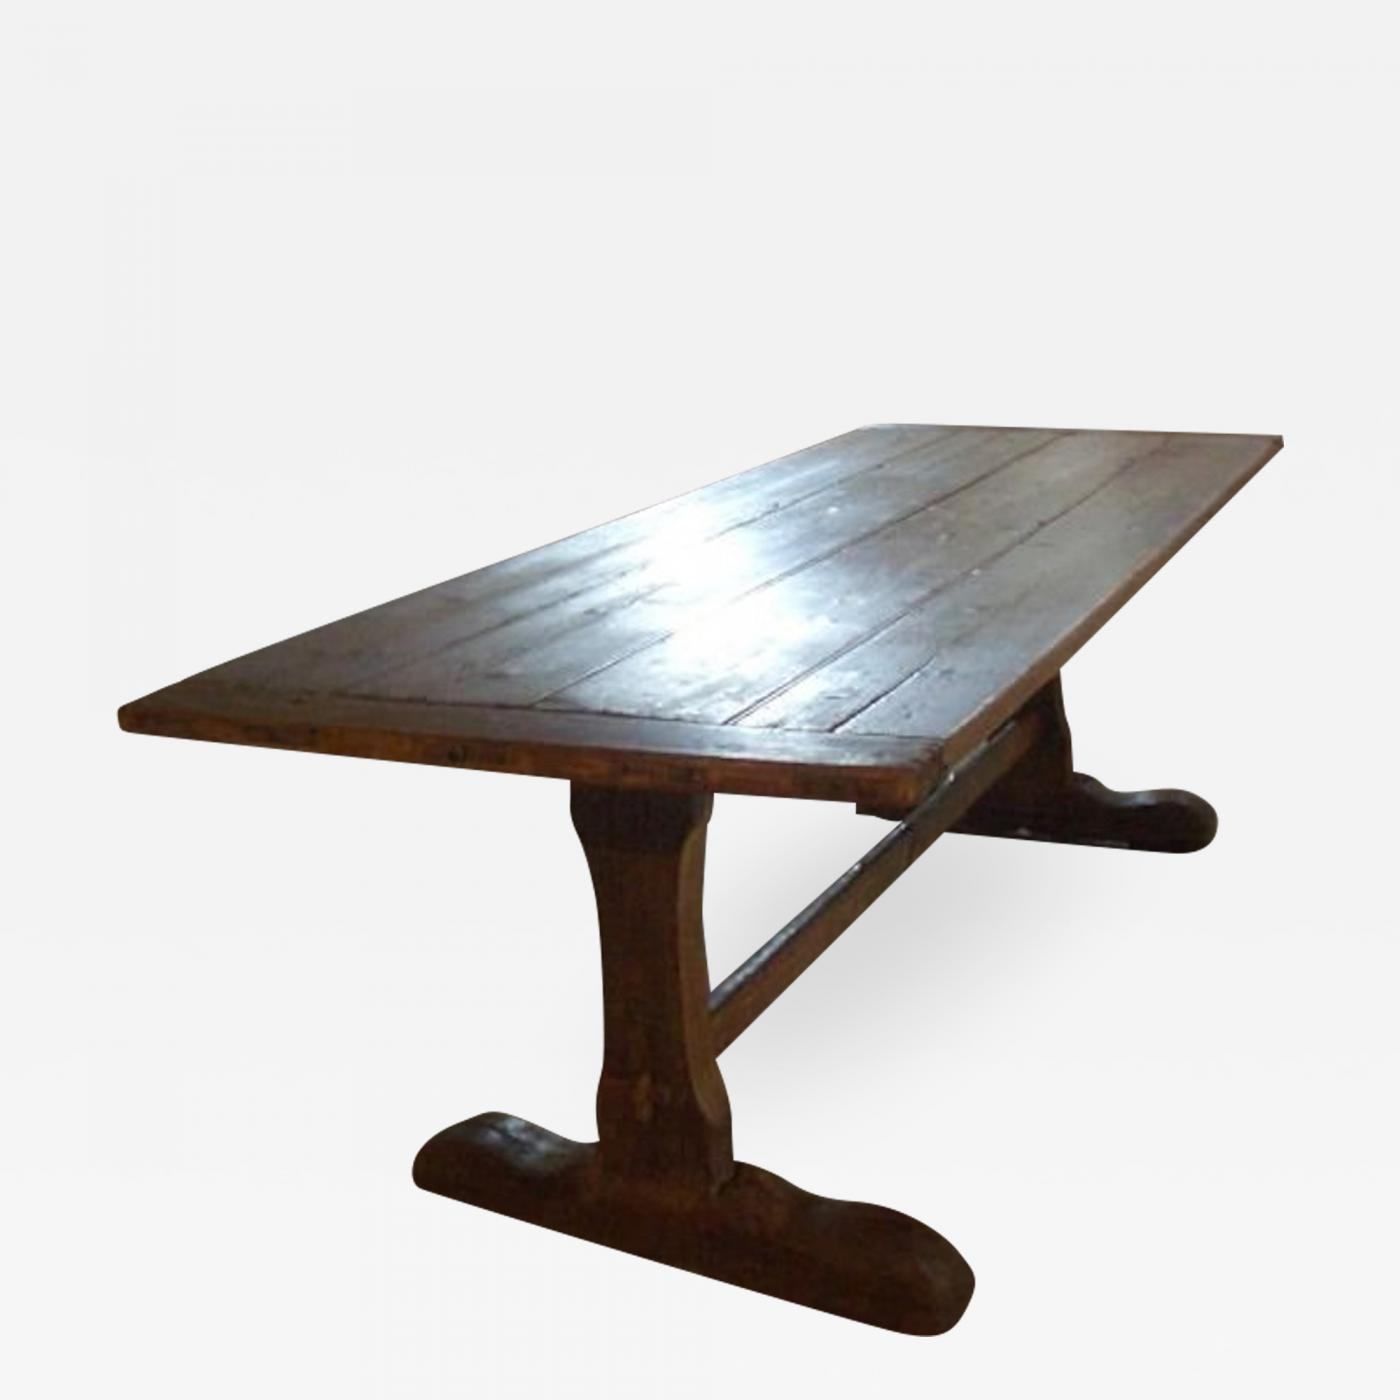 Children's Trestle Table 18th Cent Early American Rustic Pine Trestle Table